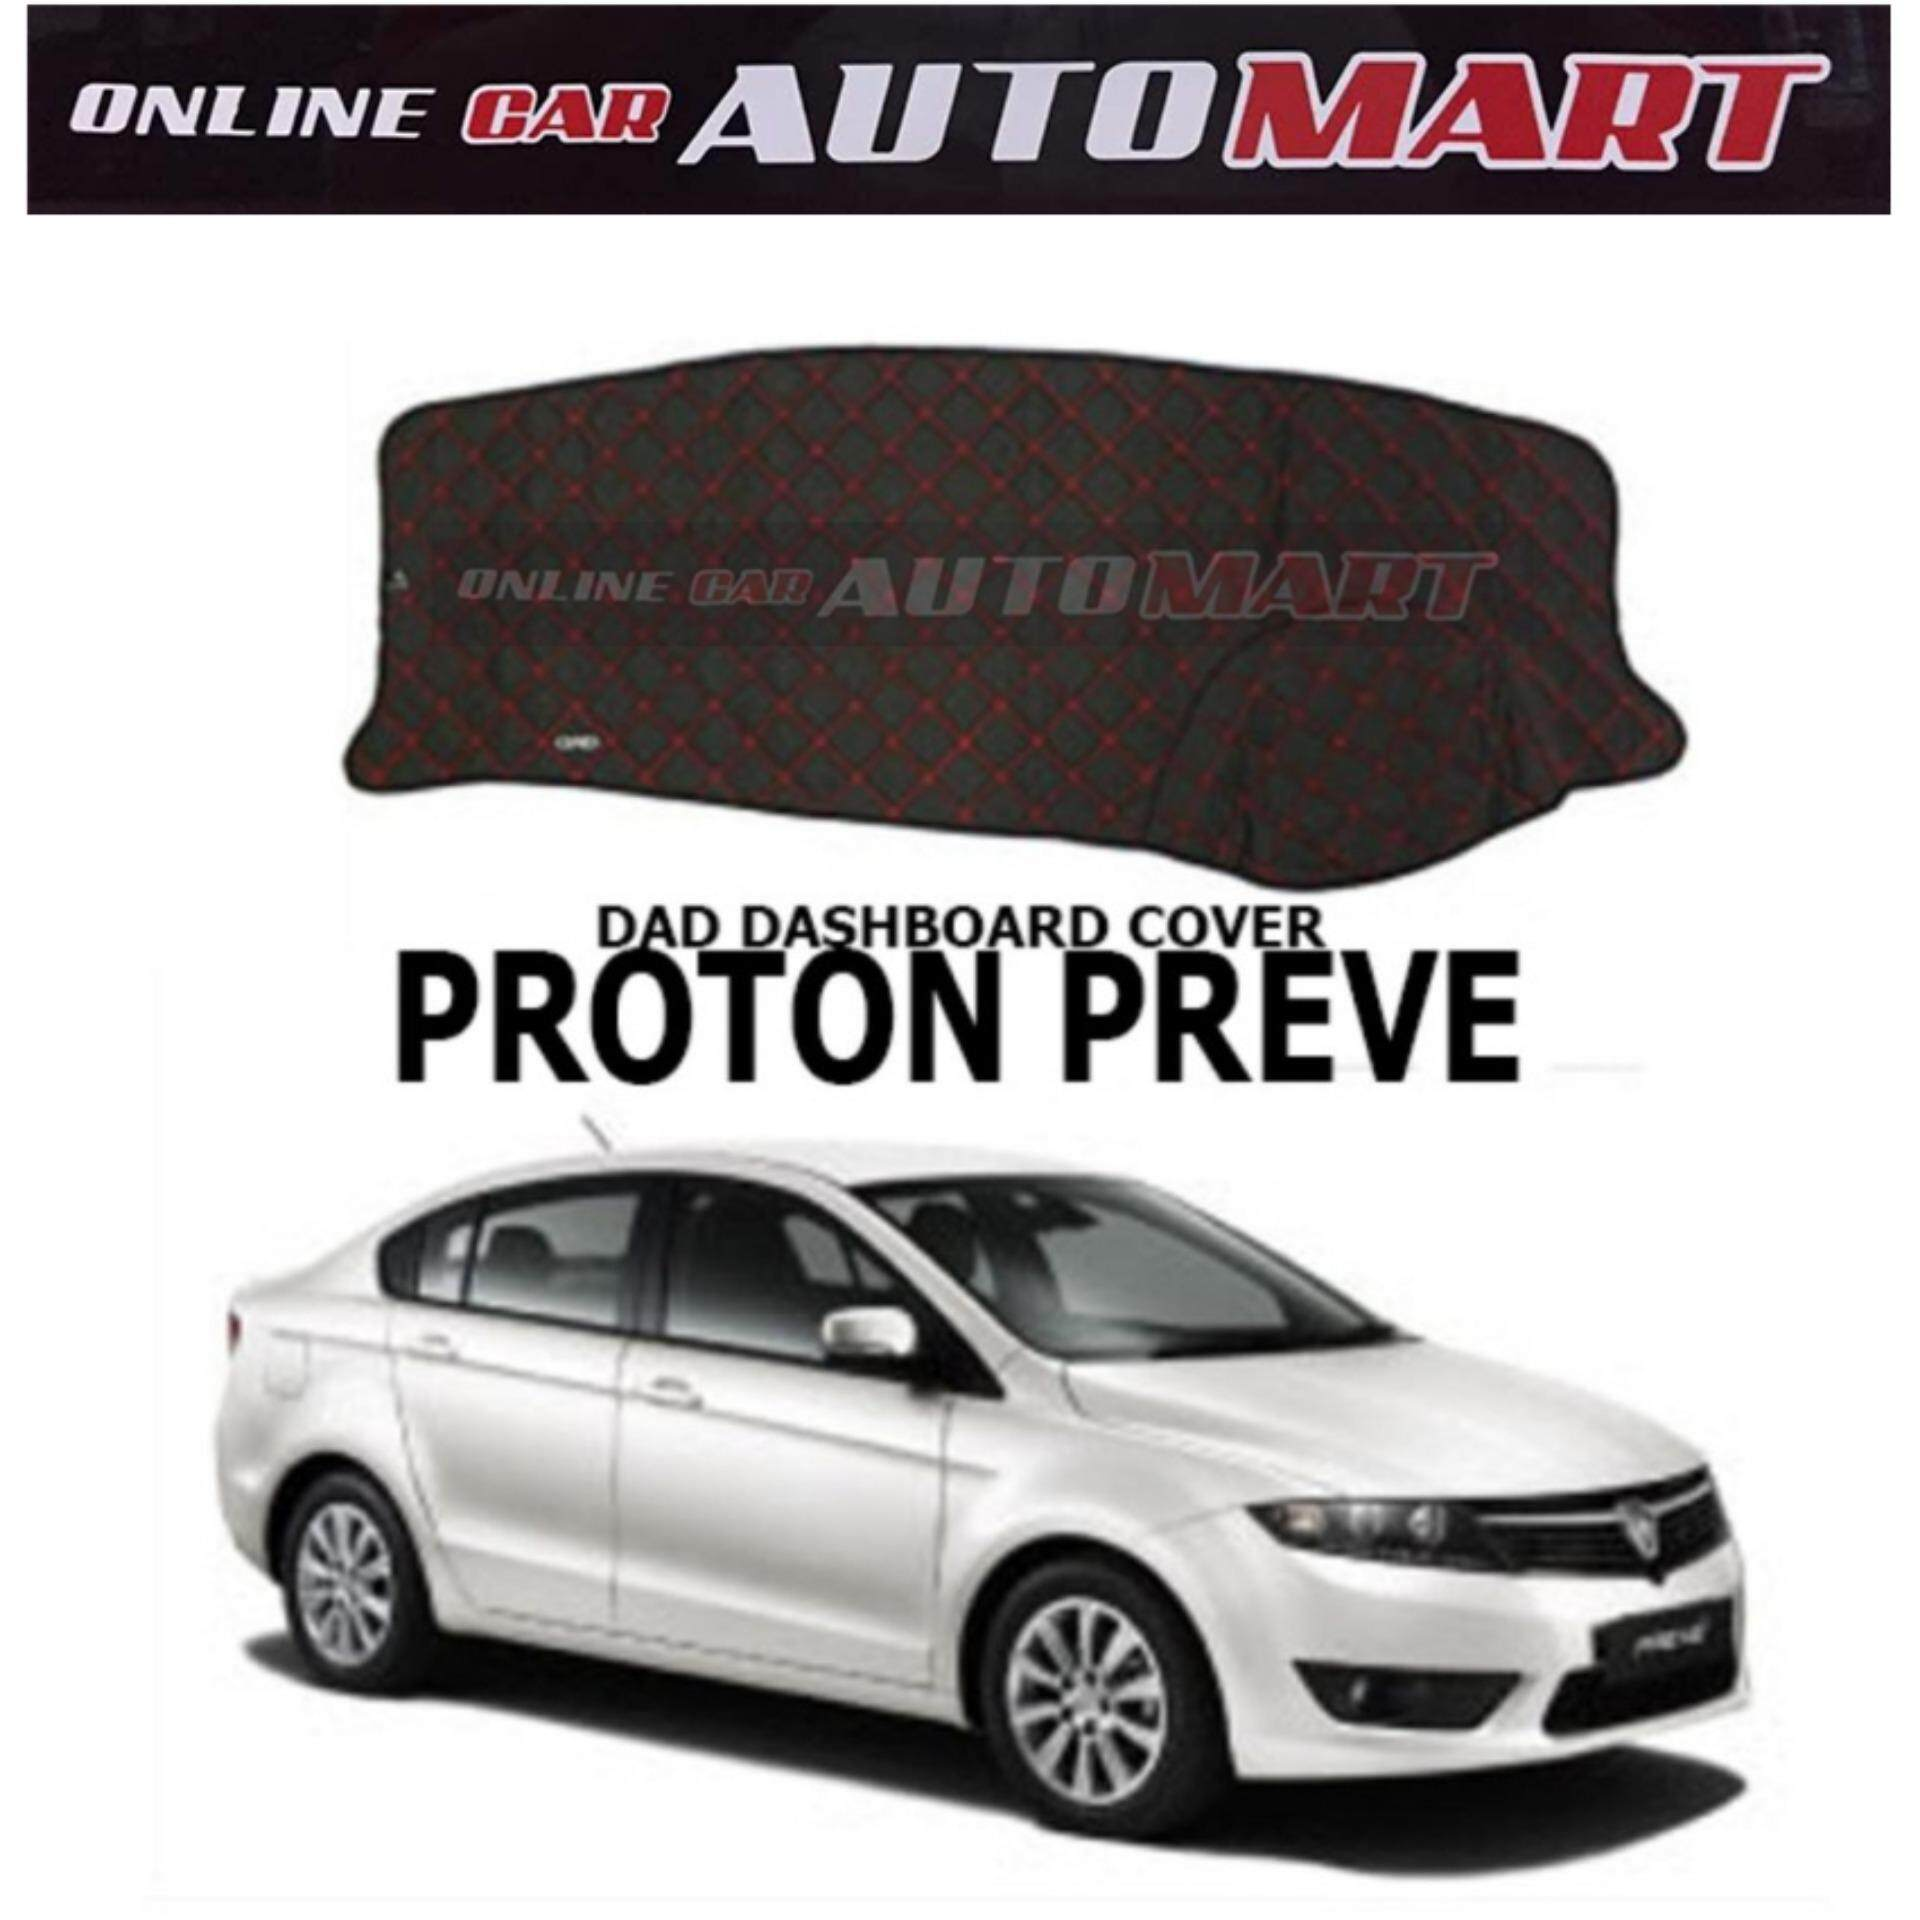 DAD Non Slip Dashboard Cover - Proton Preve